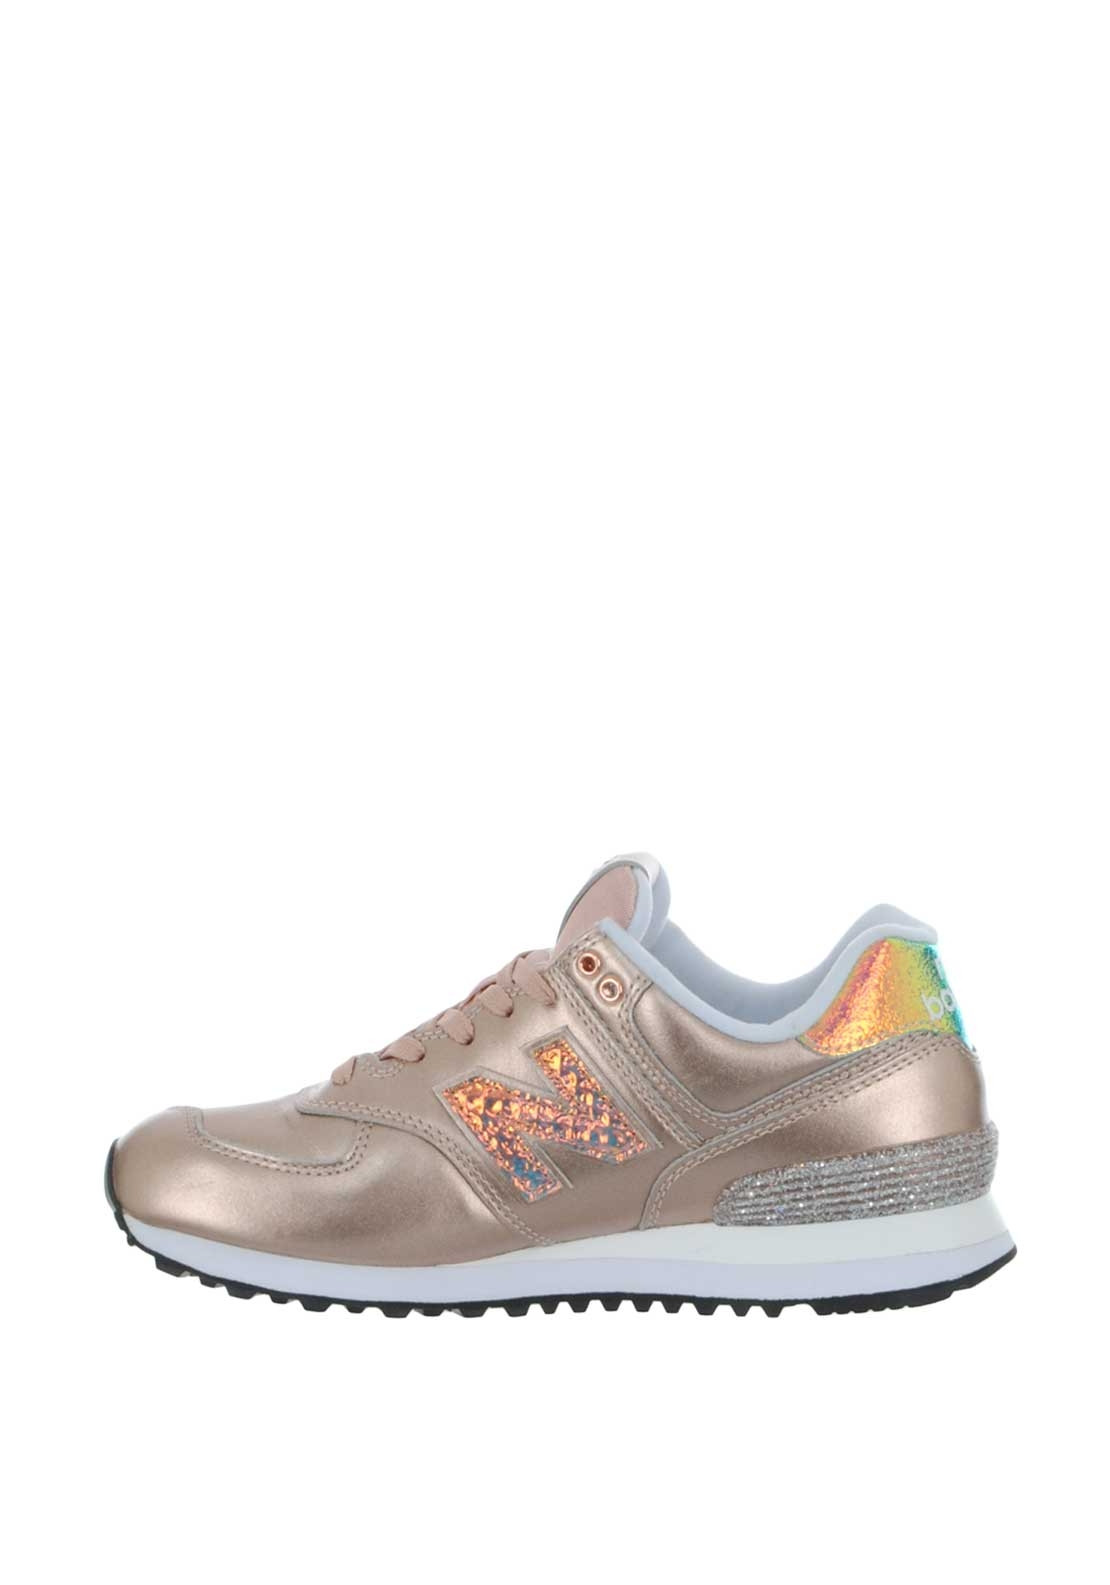 size 40 52144 55f8c New Balance Womens 574 Metallic Trainers, Rose Gold